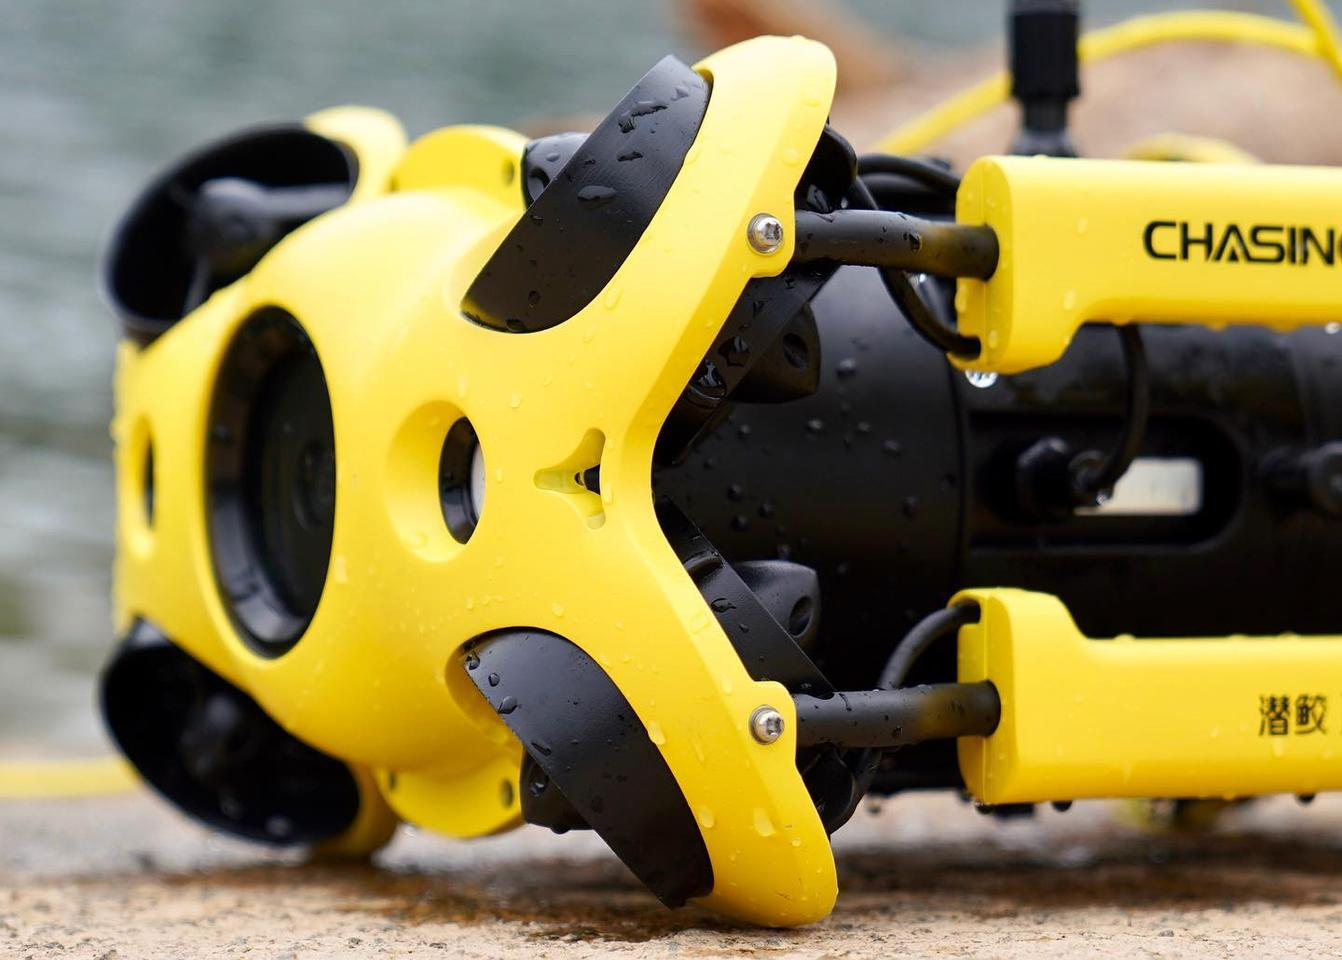 The Chasing M2 ROV can be operated in water temperatures ranging from -10 to 45 ºC (14 to 113 ºF)